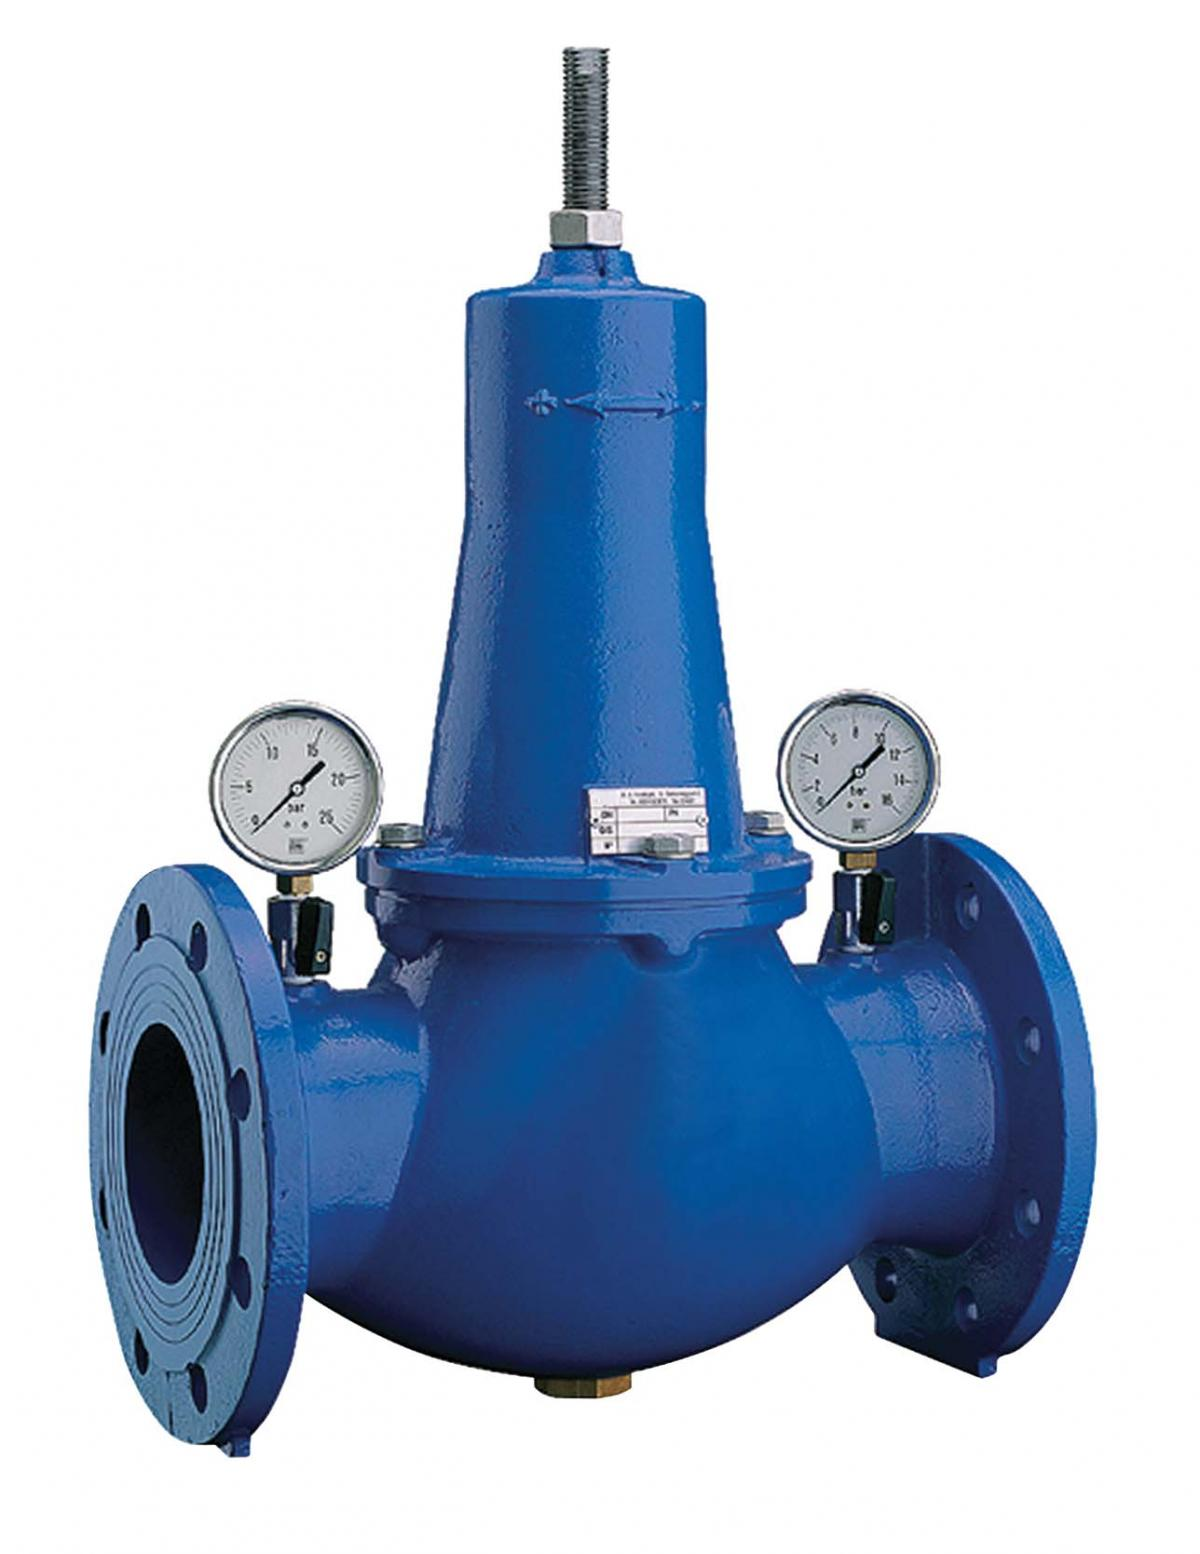 New pressure reducing valve from T-T Flow